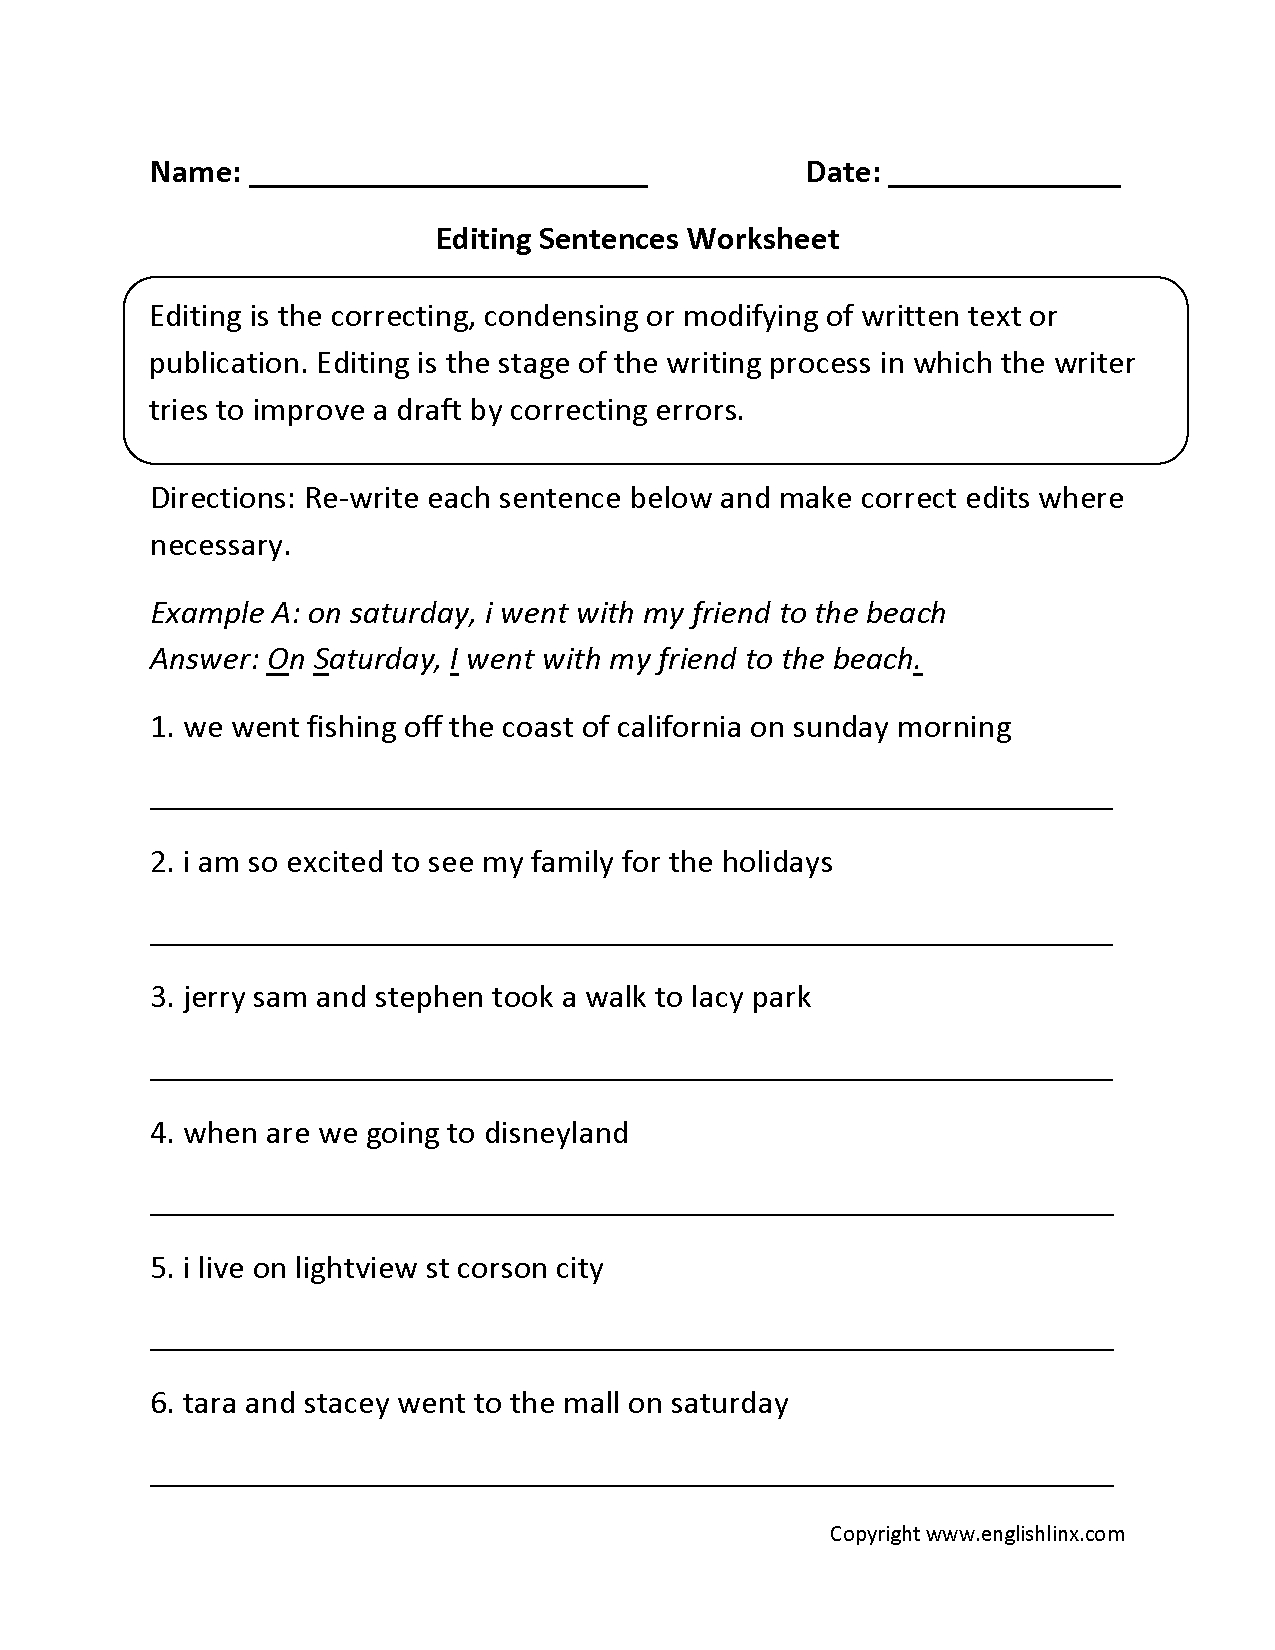 Writing Worksheets  Editing Worksheets Intended For Proofreading And Editing Worksheets Grade 6